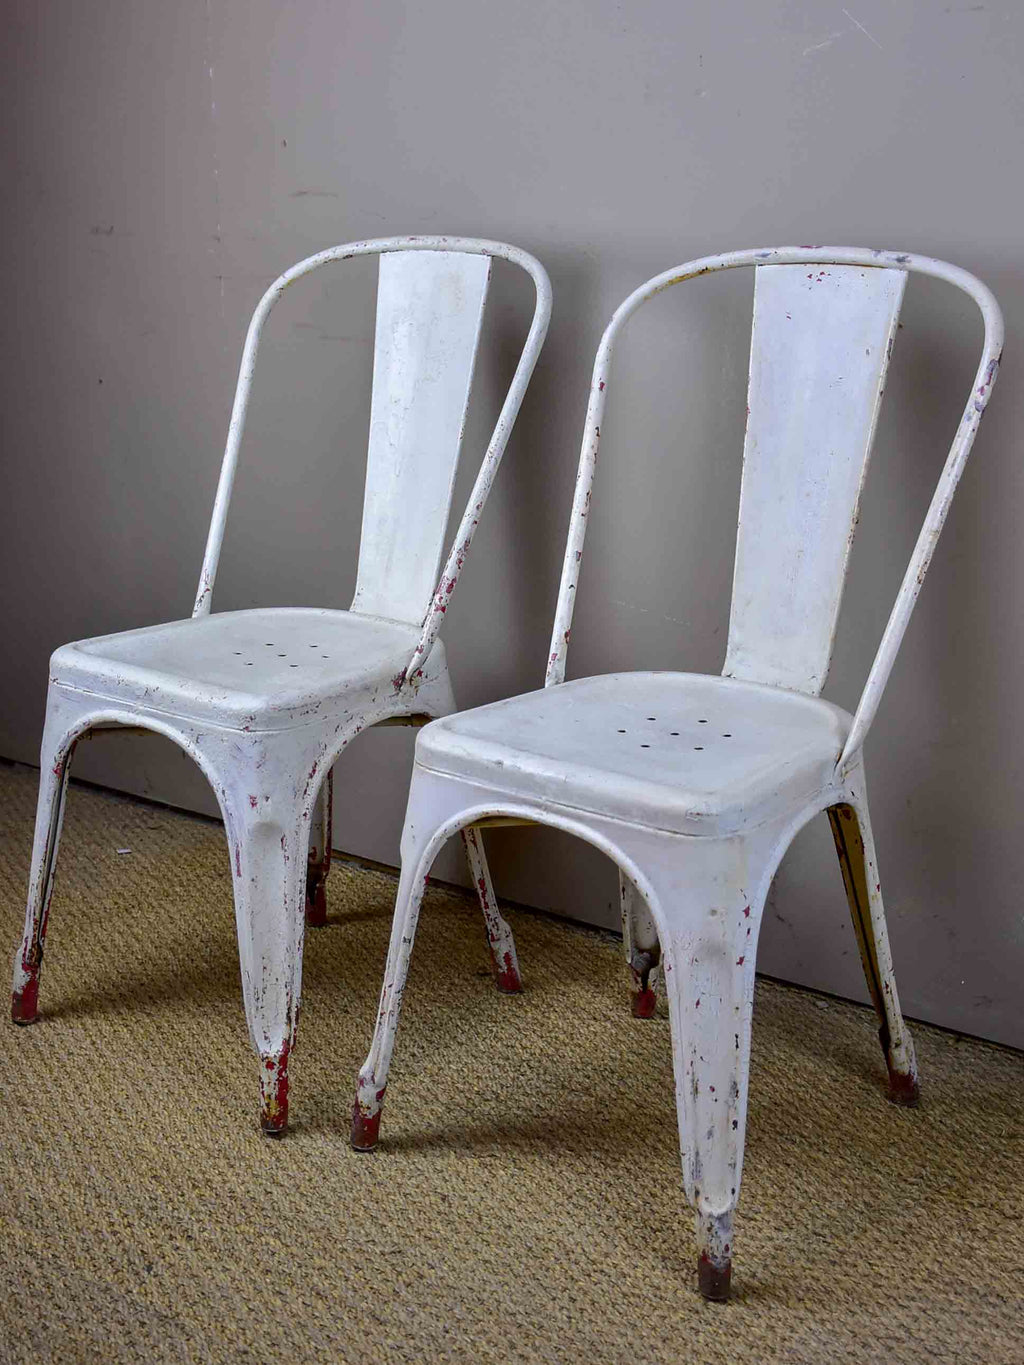 Pair of original 1950's Tolix chairs